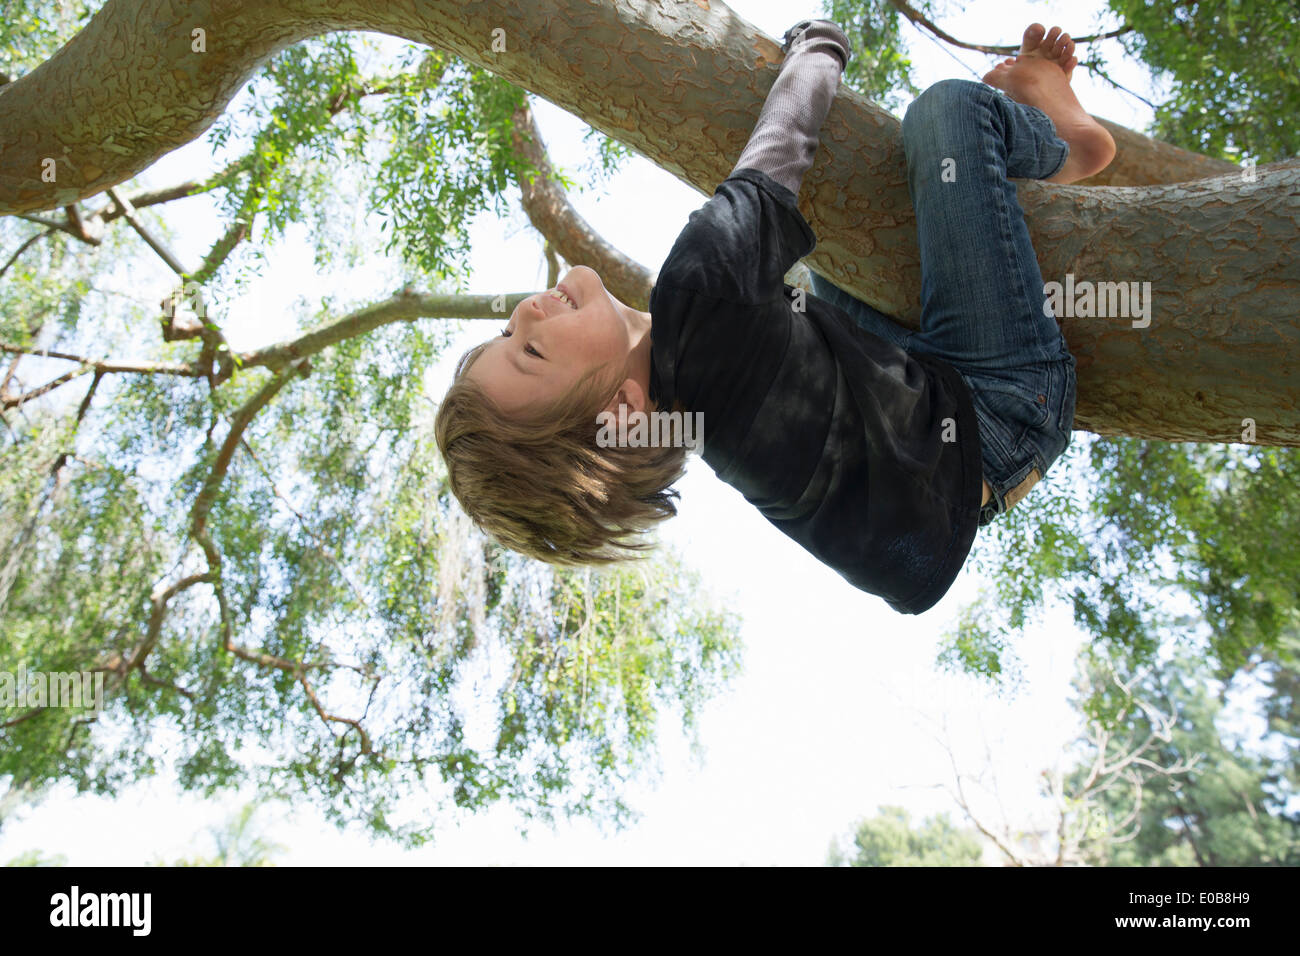 Upside down boy wrapped around tree branch - Stock Image